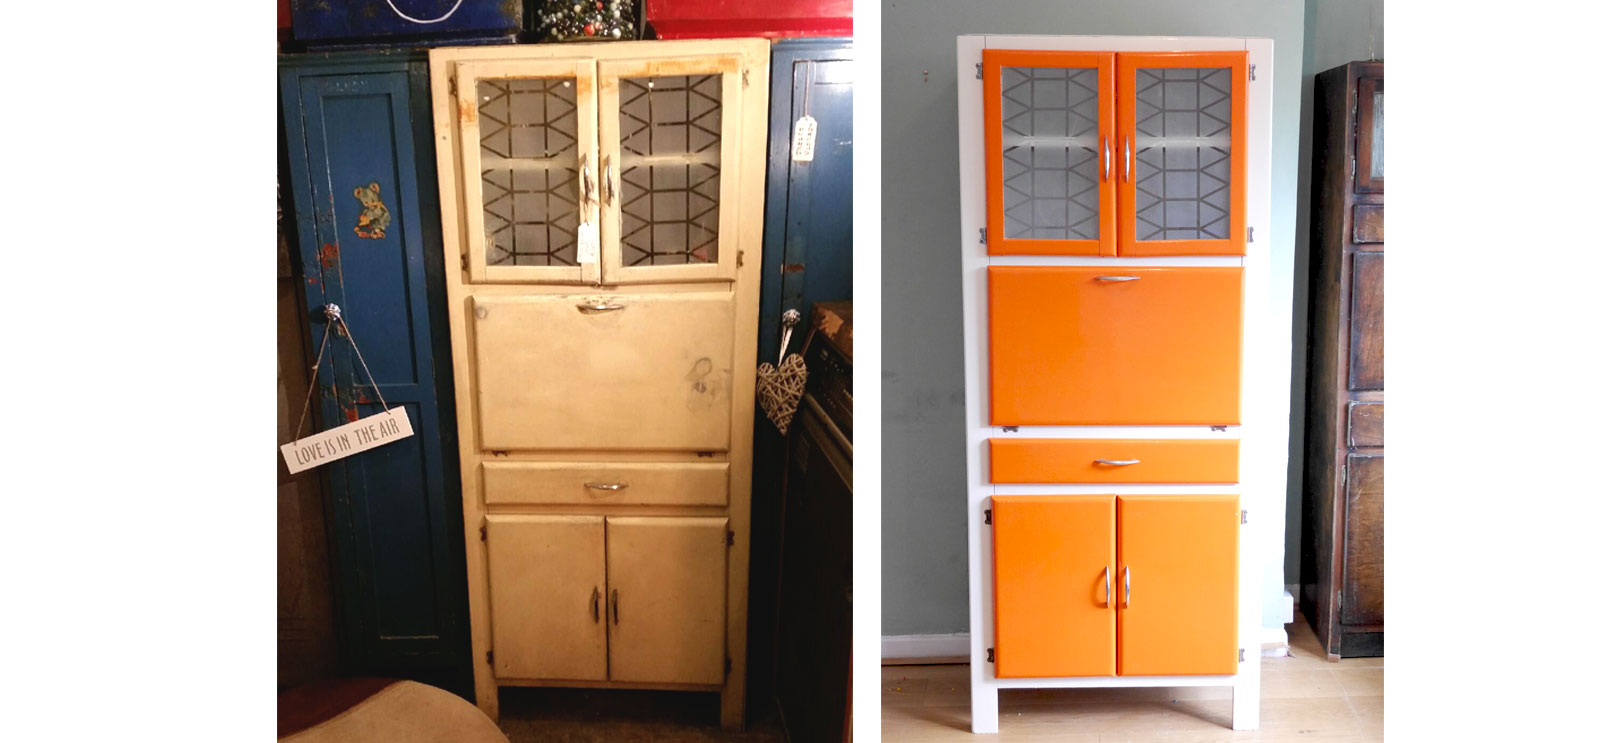 Hoosier cabinet refurb before and after shots